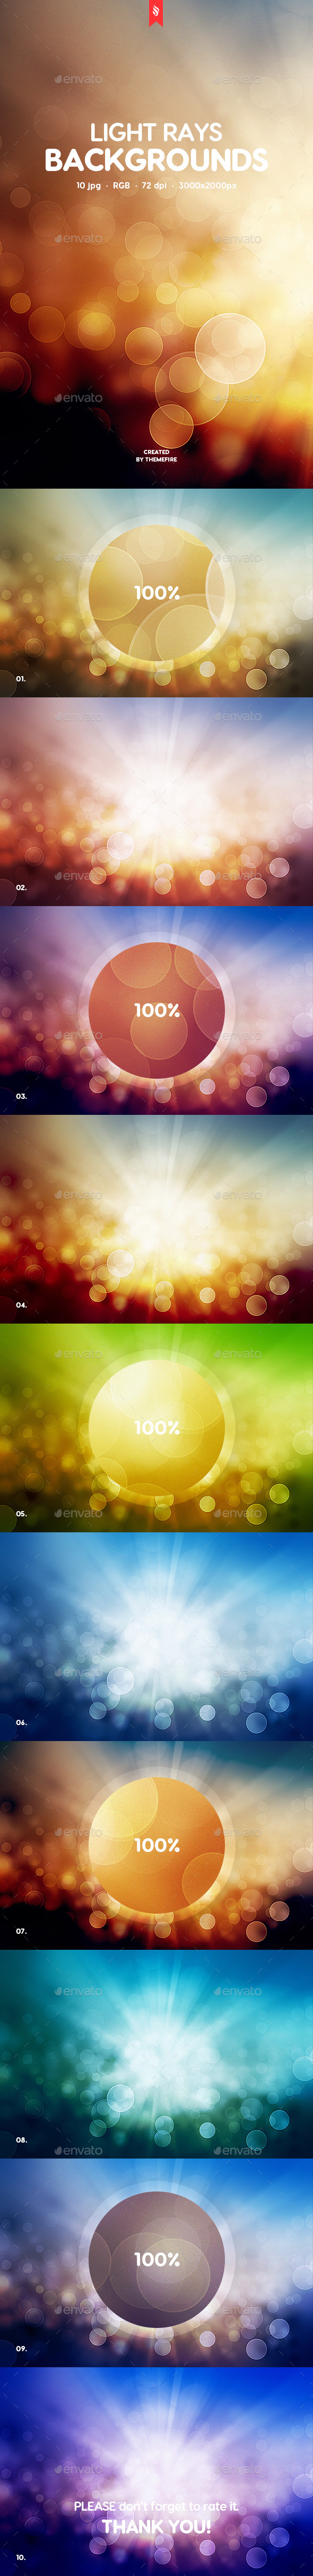 Light Rays Backgrounds - Abstract Backgrounds